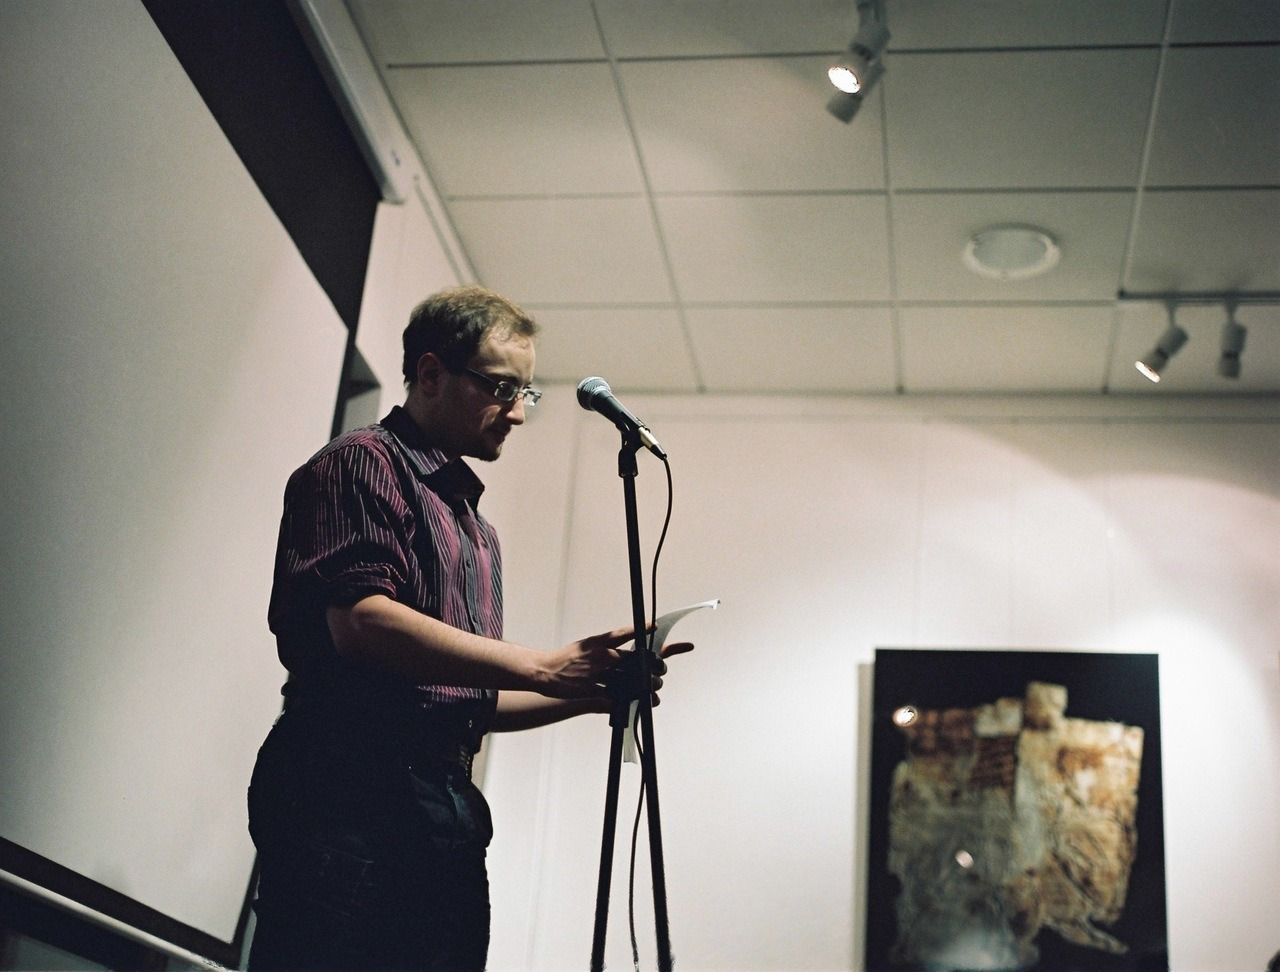 Anthony Adler, Poetry Loves Company (Jan 2012)